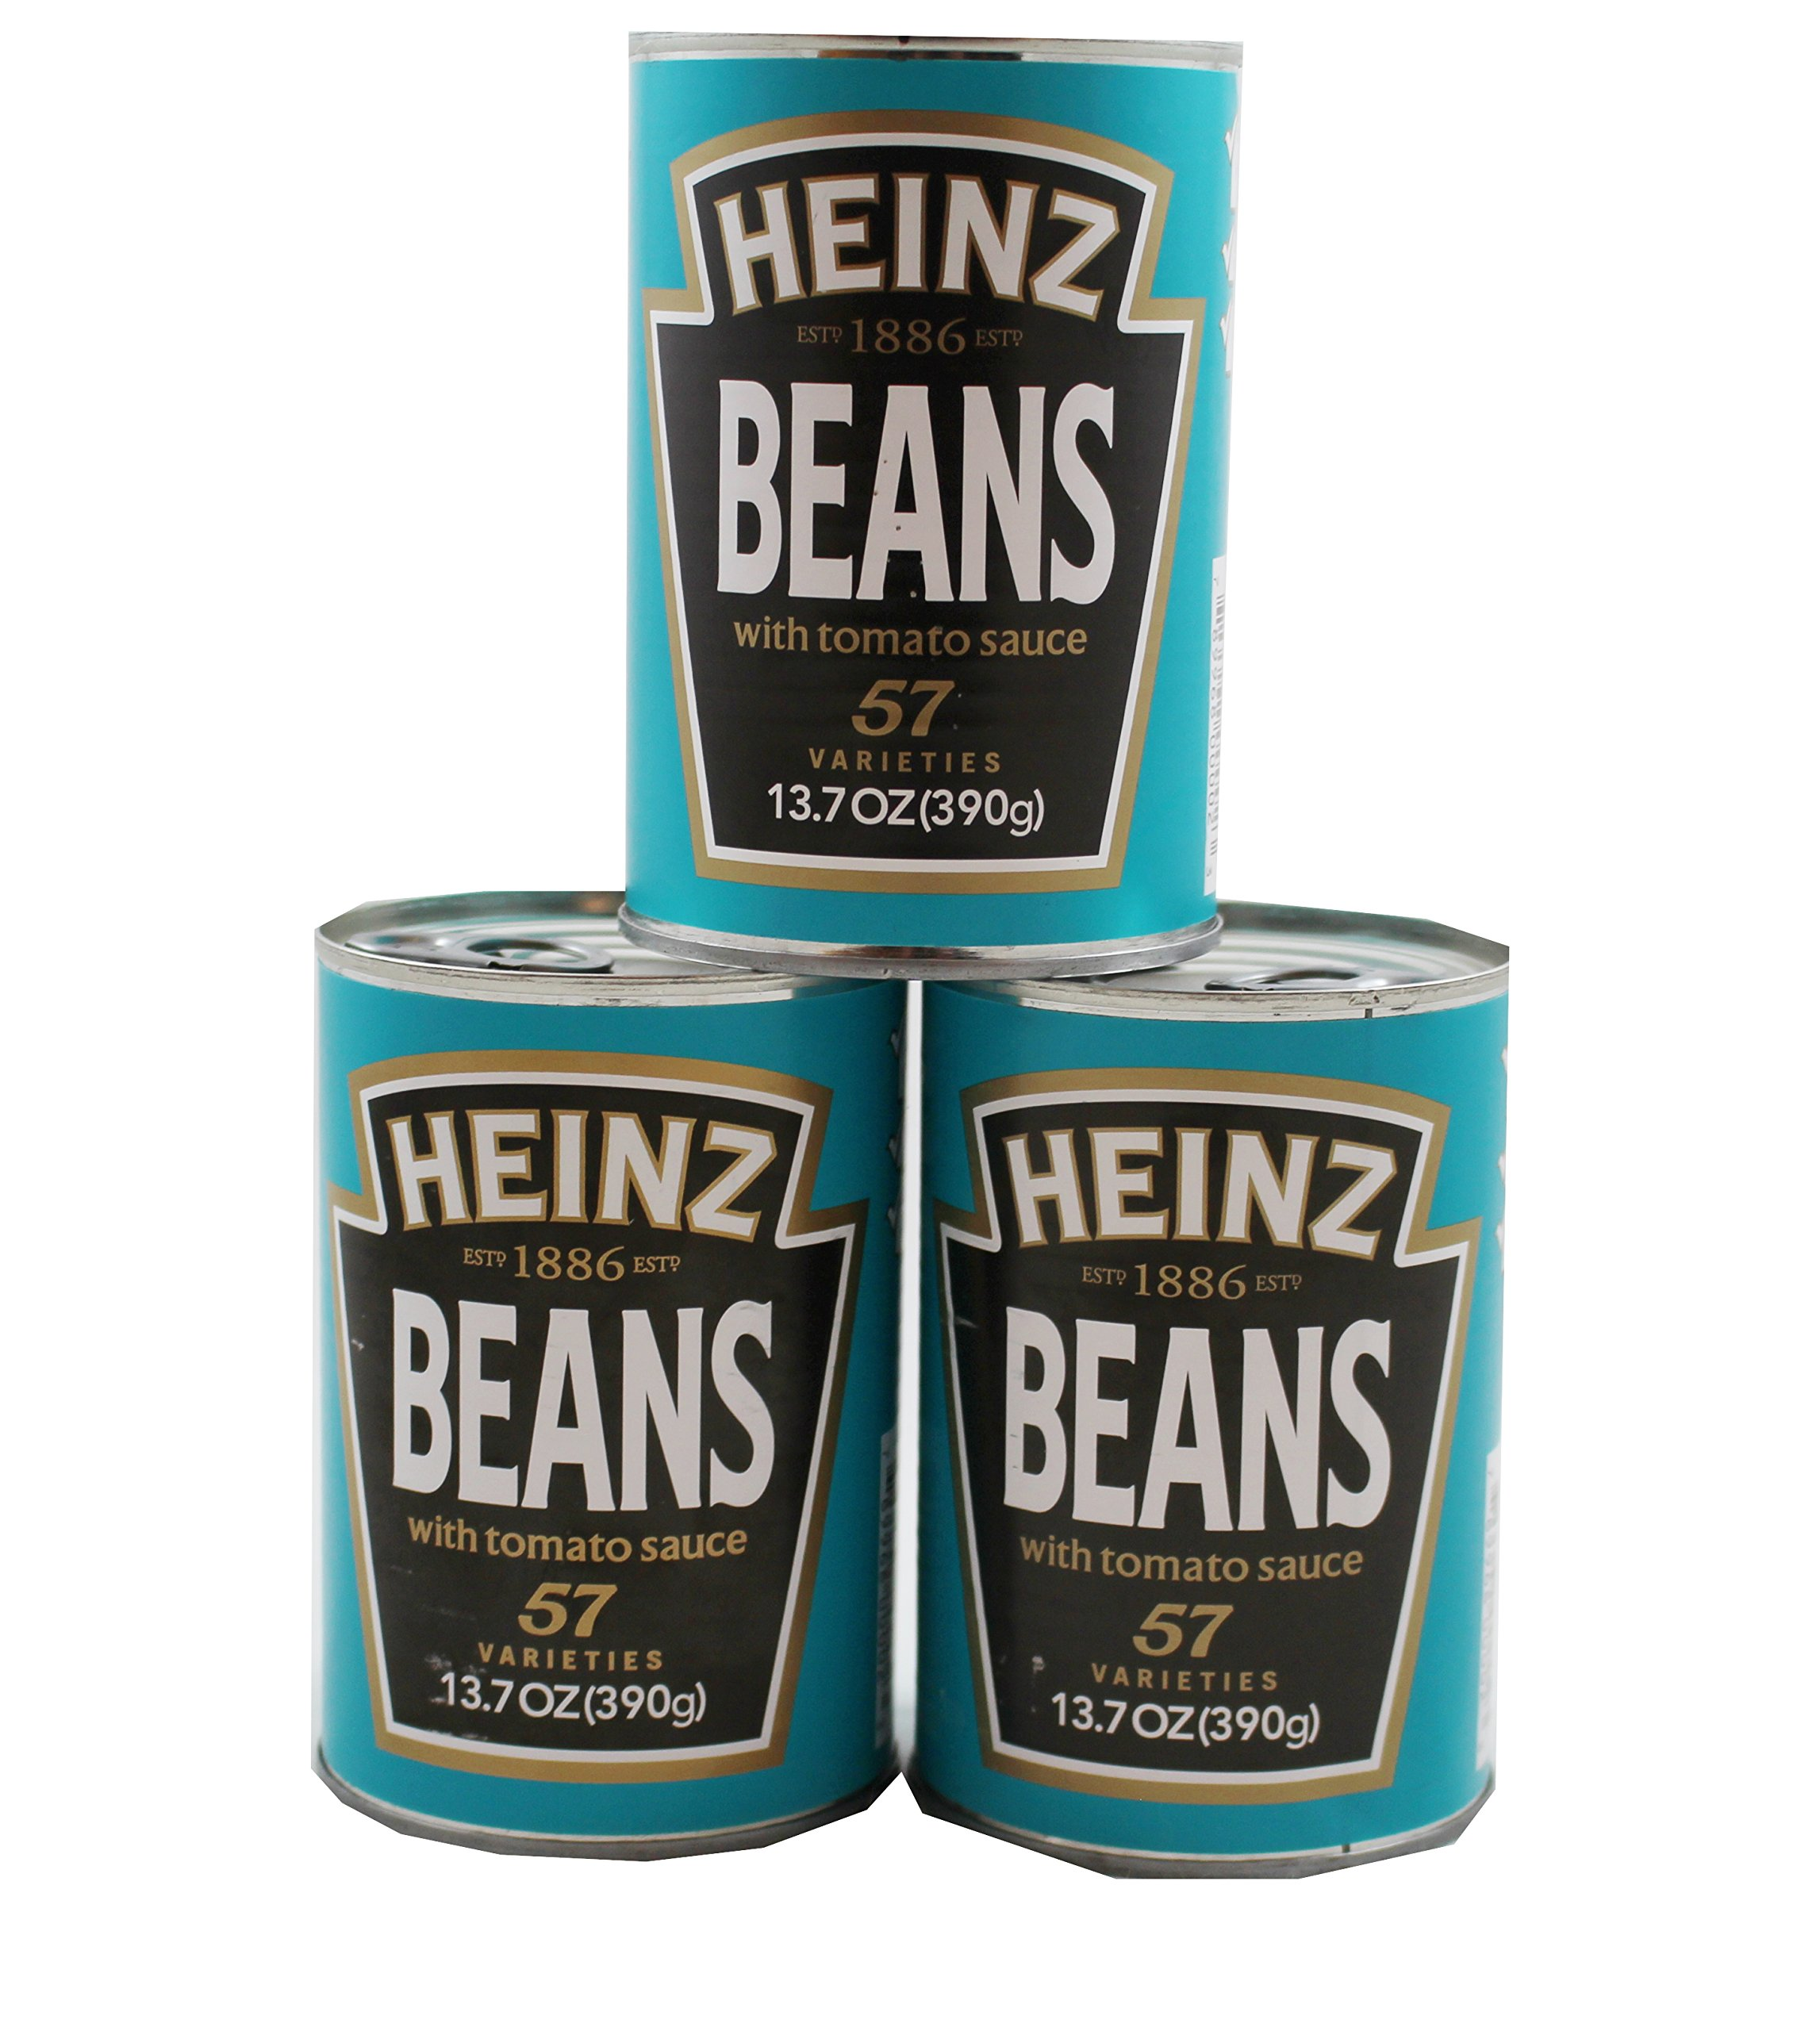 Heinz Beans with Tomato Sauce, 13.7 oz Can (Pack of 3) by Heinz